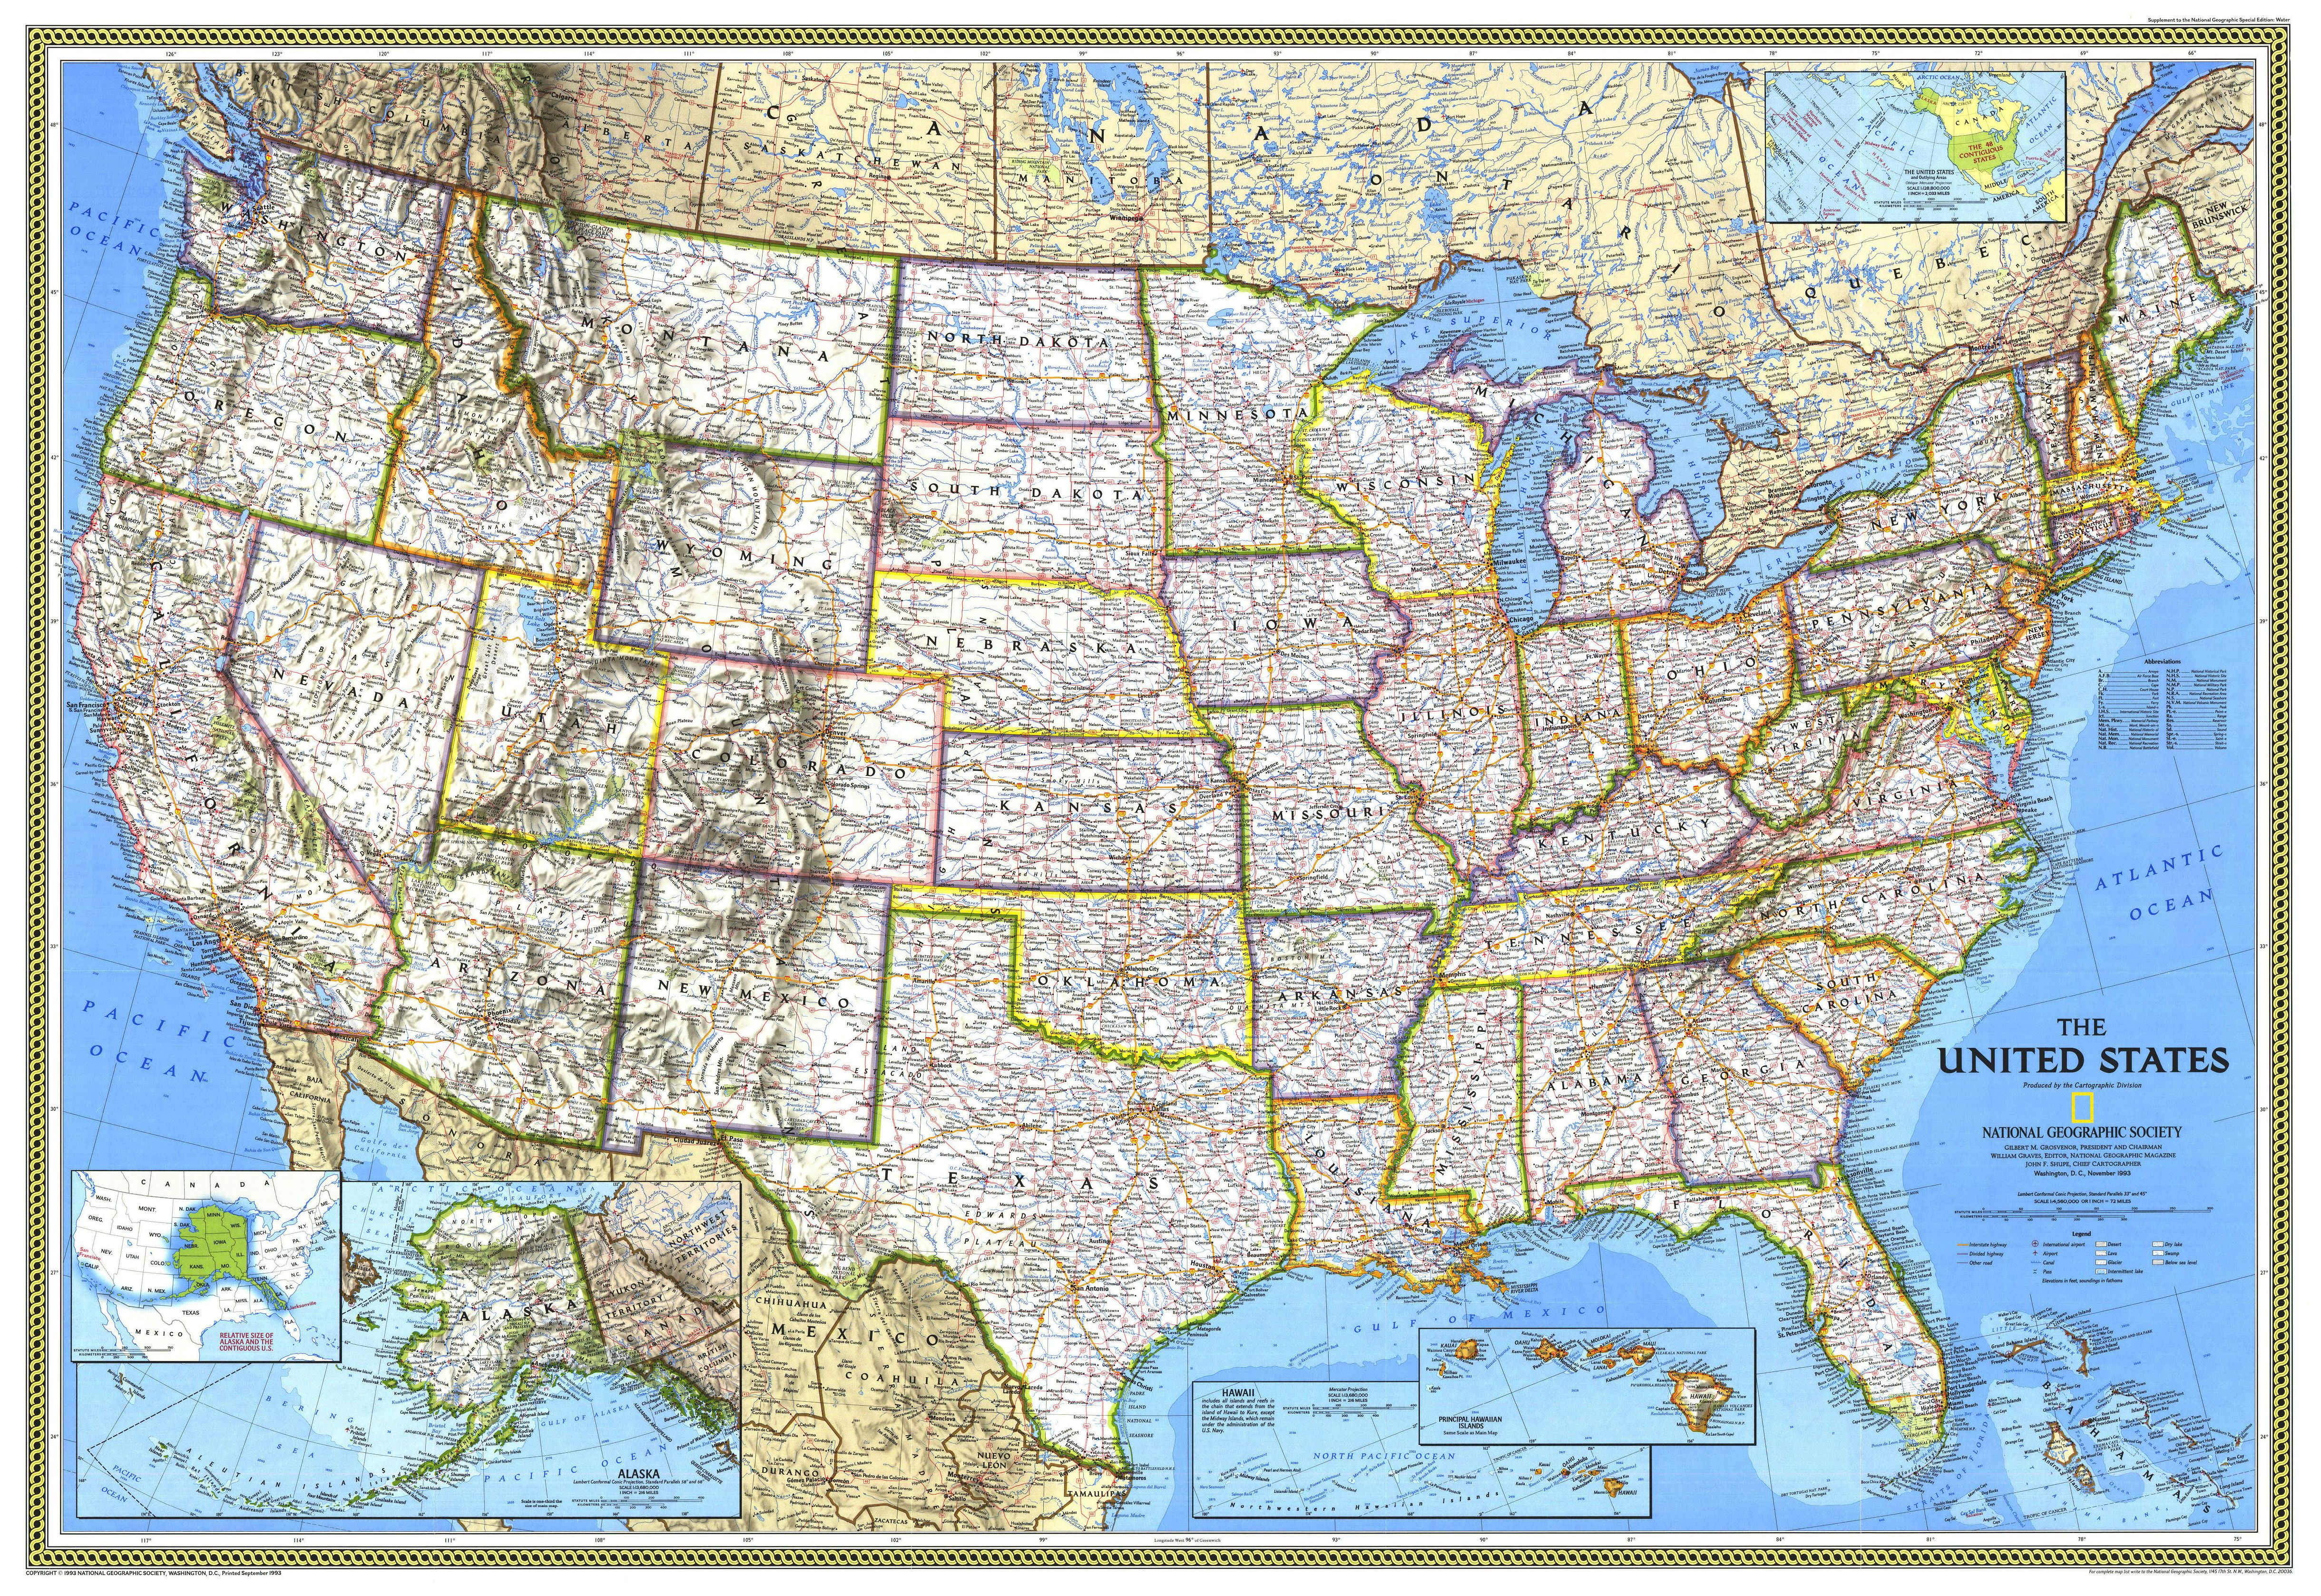 United States National Geographic Map Google Search Walk - Usa map google